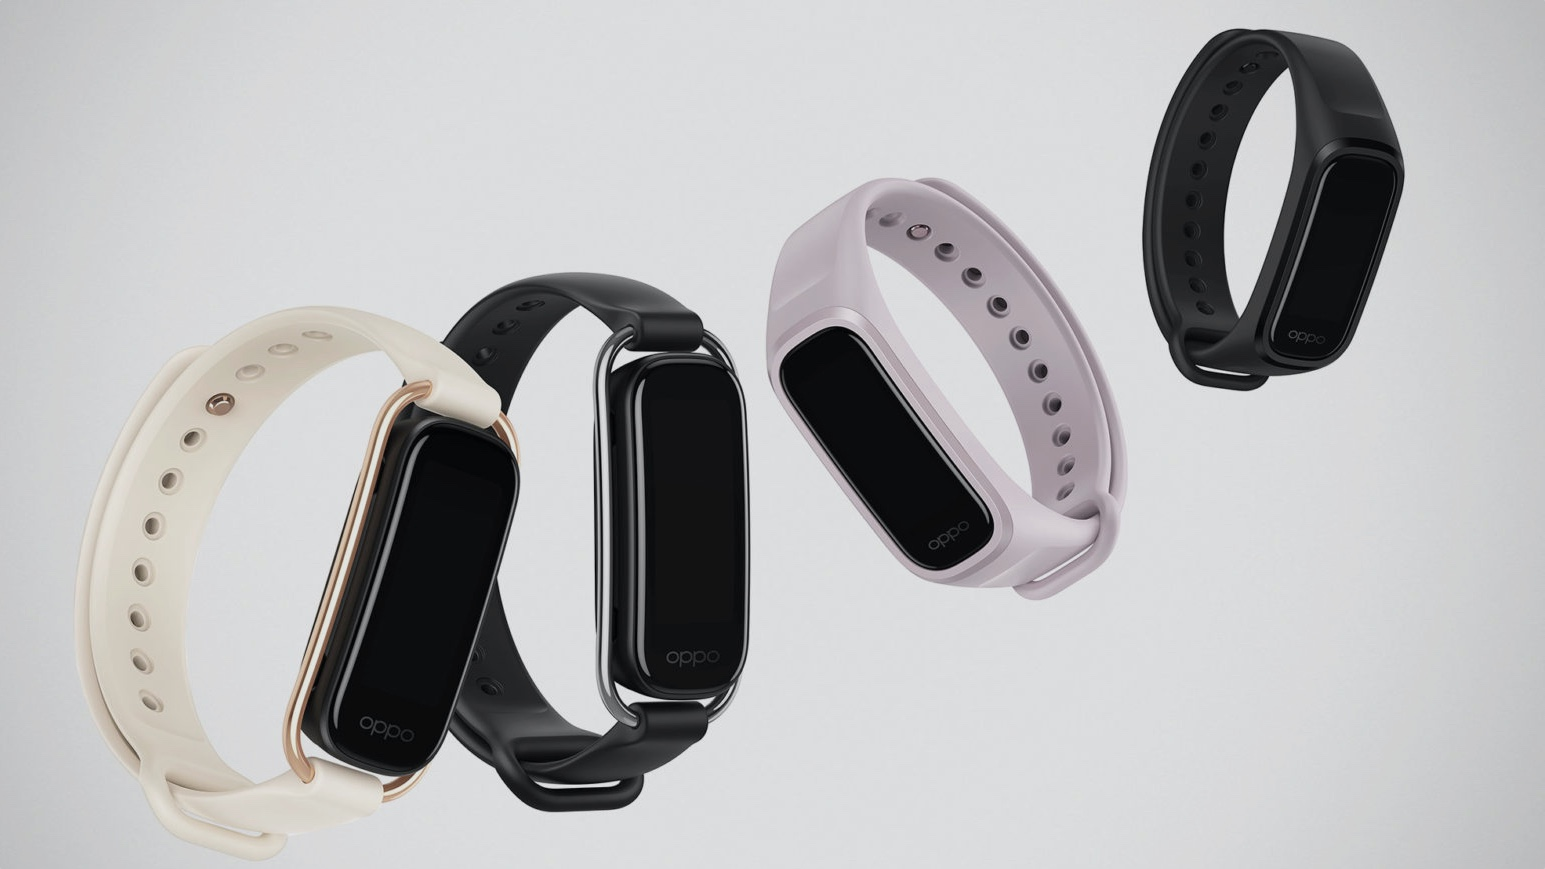 OnePlus Band: price, specs, release date, and more